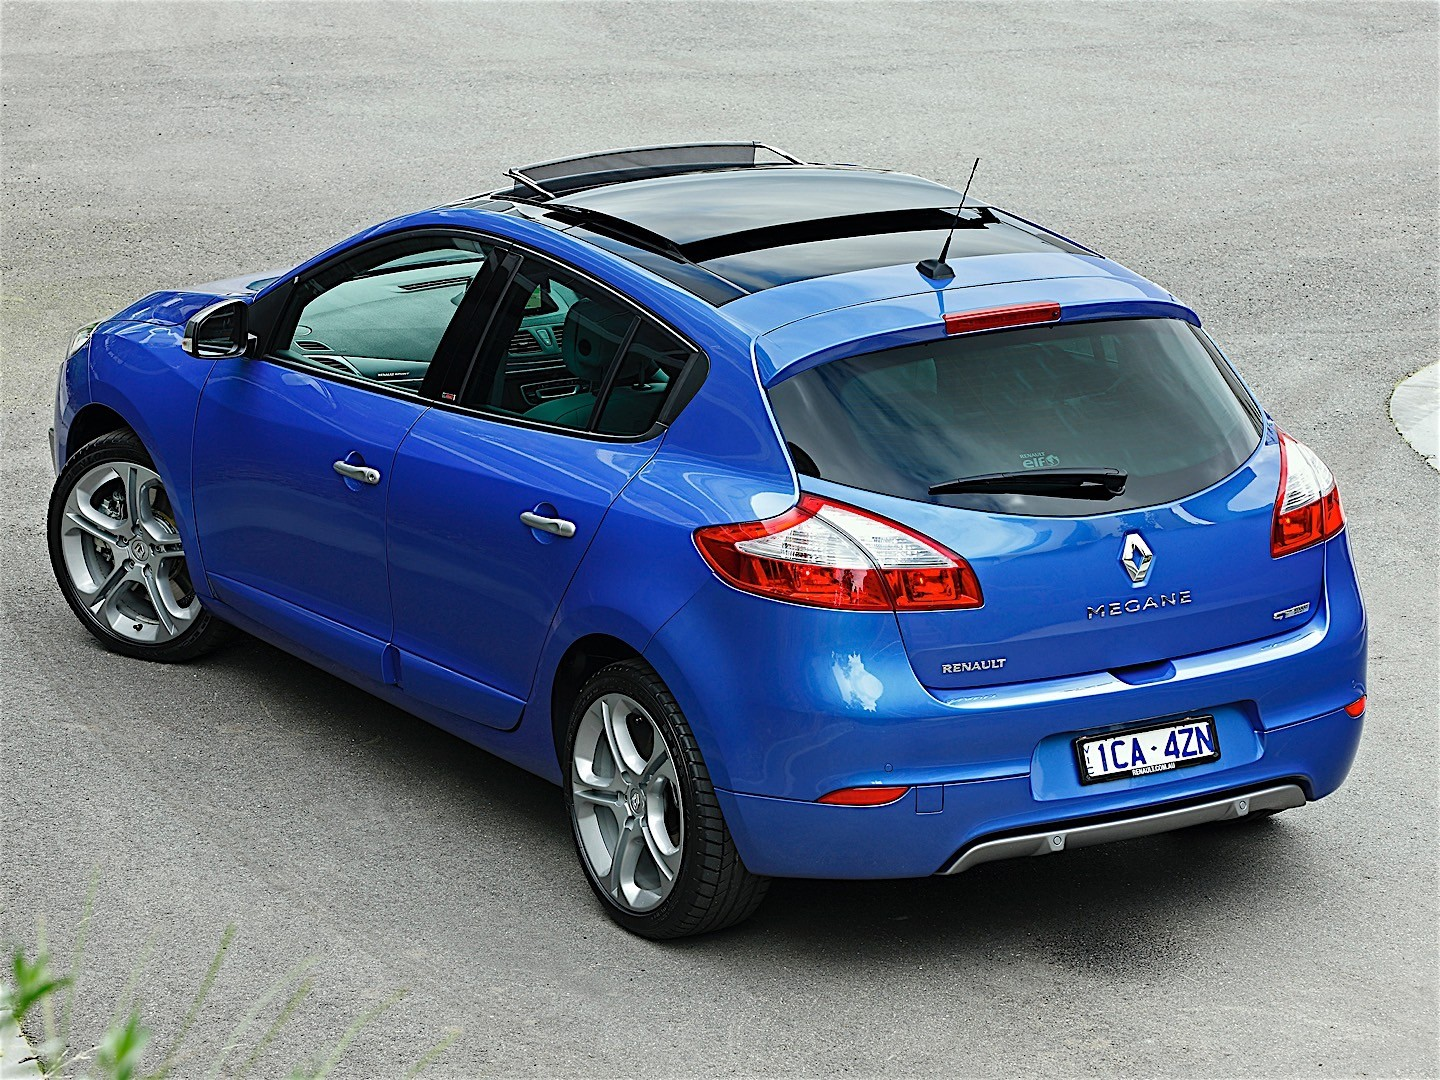 renault megane gt 5 doors specs 2013 2014 2015 autoevolution. Black Bedroom Furniture Sets. Home Design Ideas